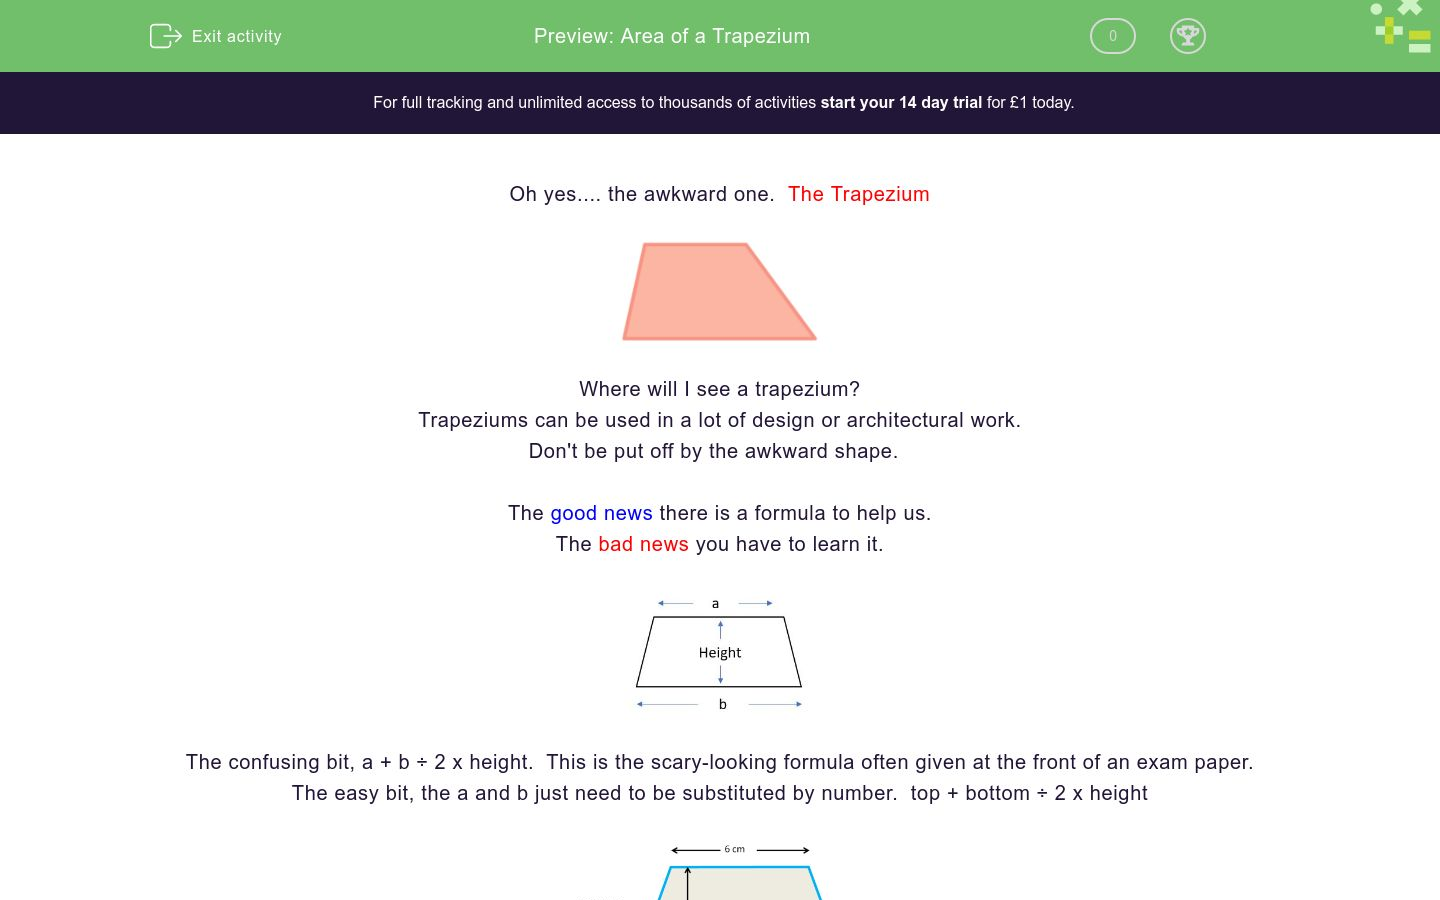 'Find the Area of a Trapezium' worksheet